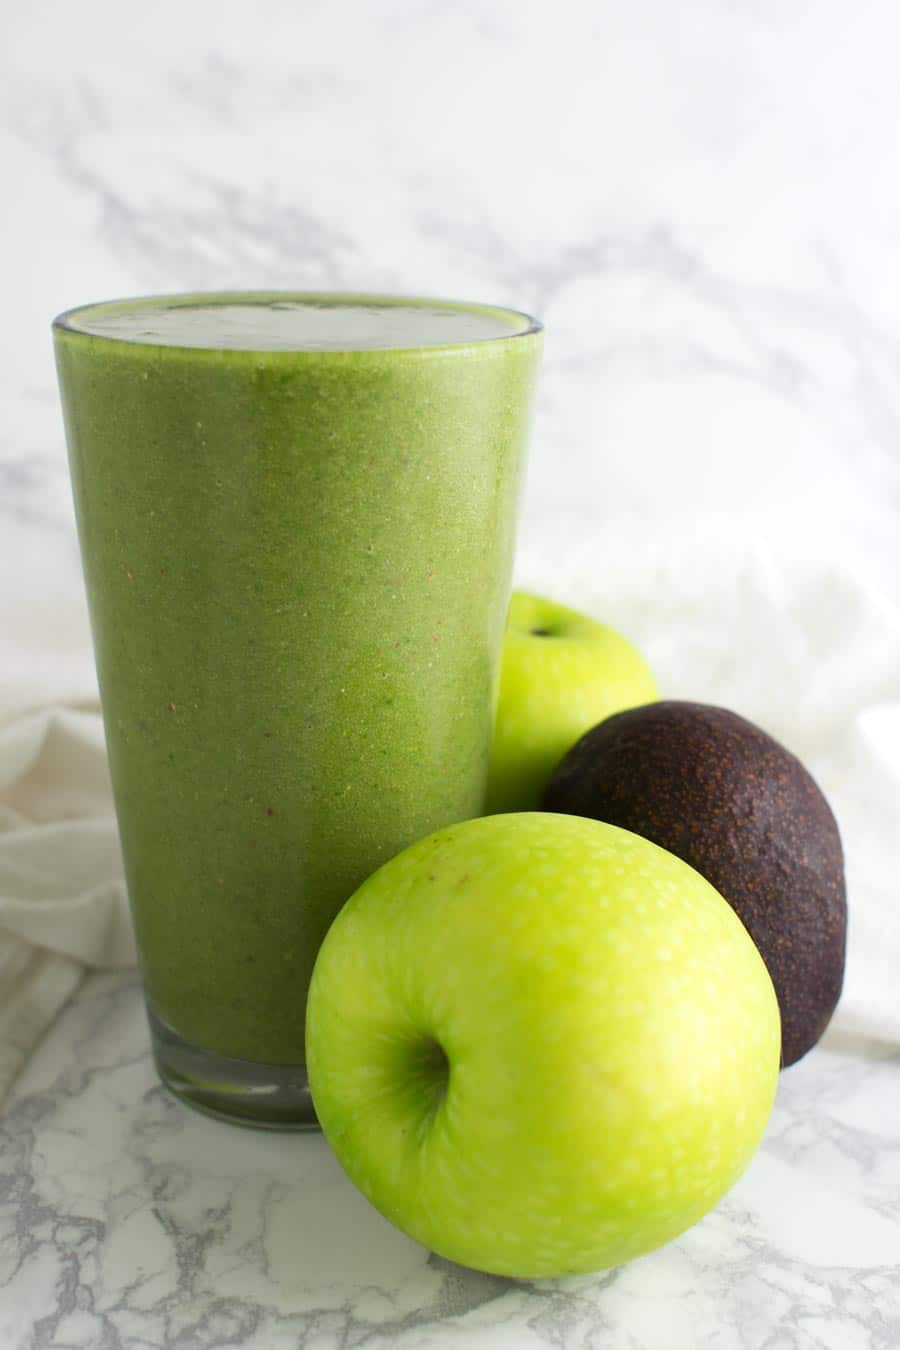 Green Salad Smoothie recipe from acleanplate.com #paleo #aip #autoimmuneprotocol